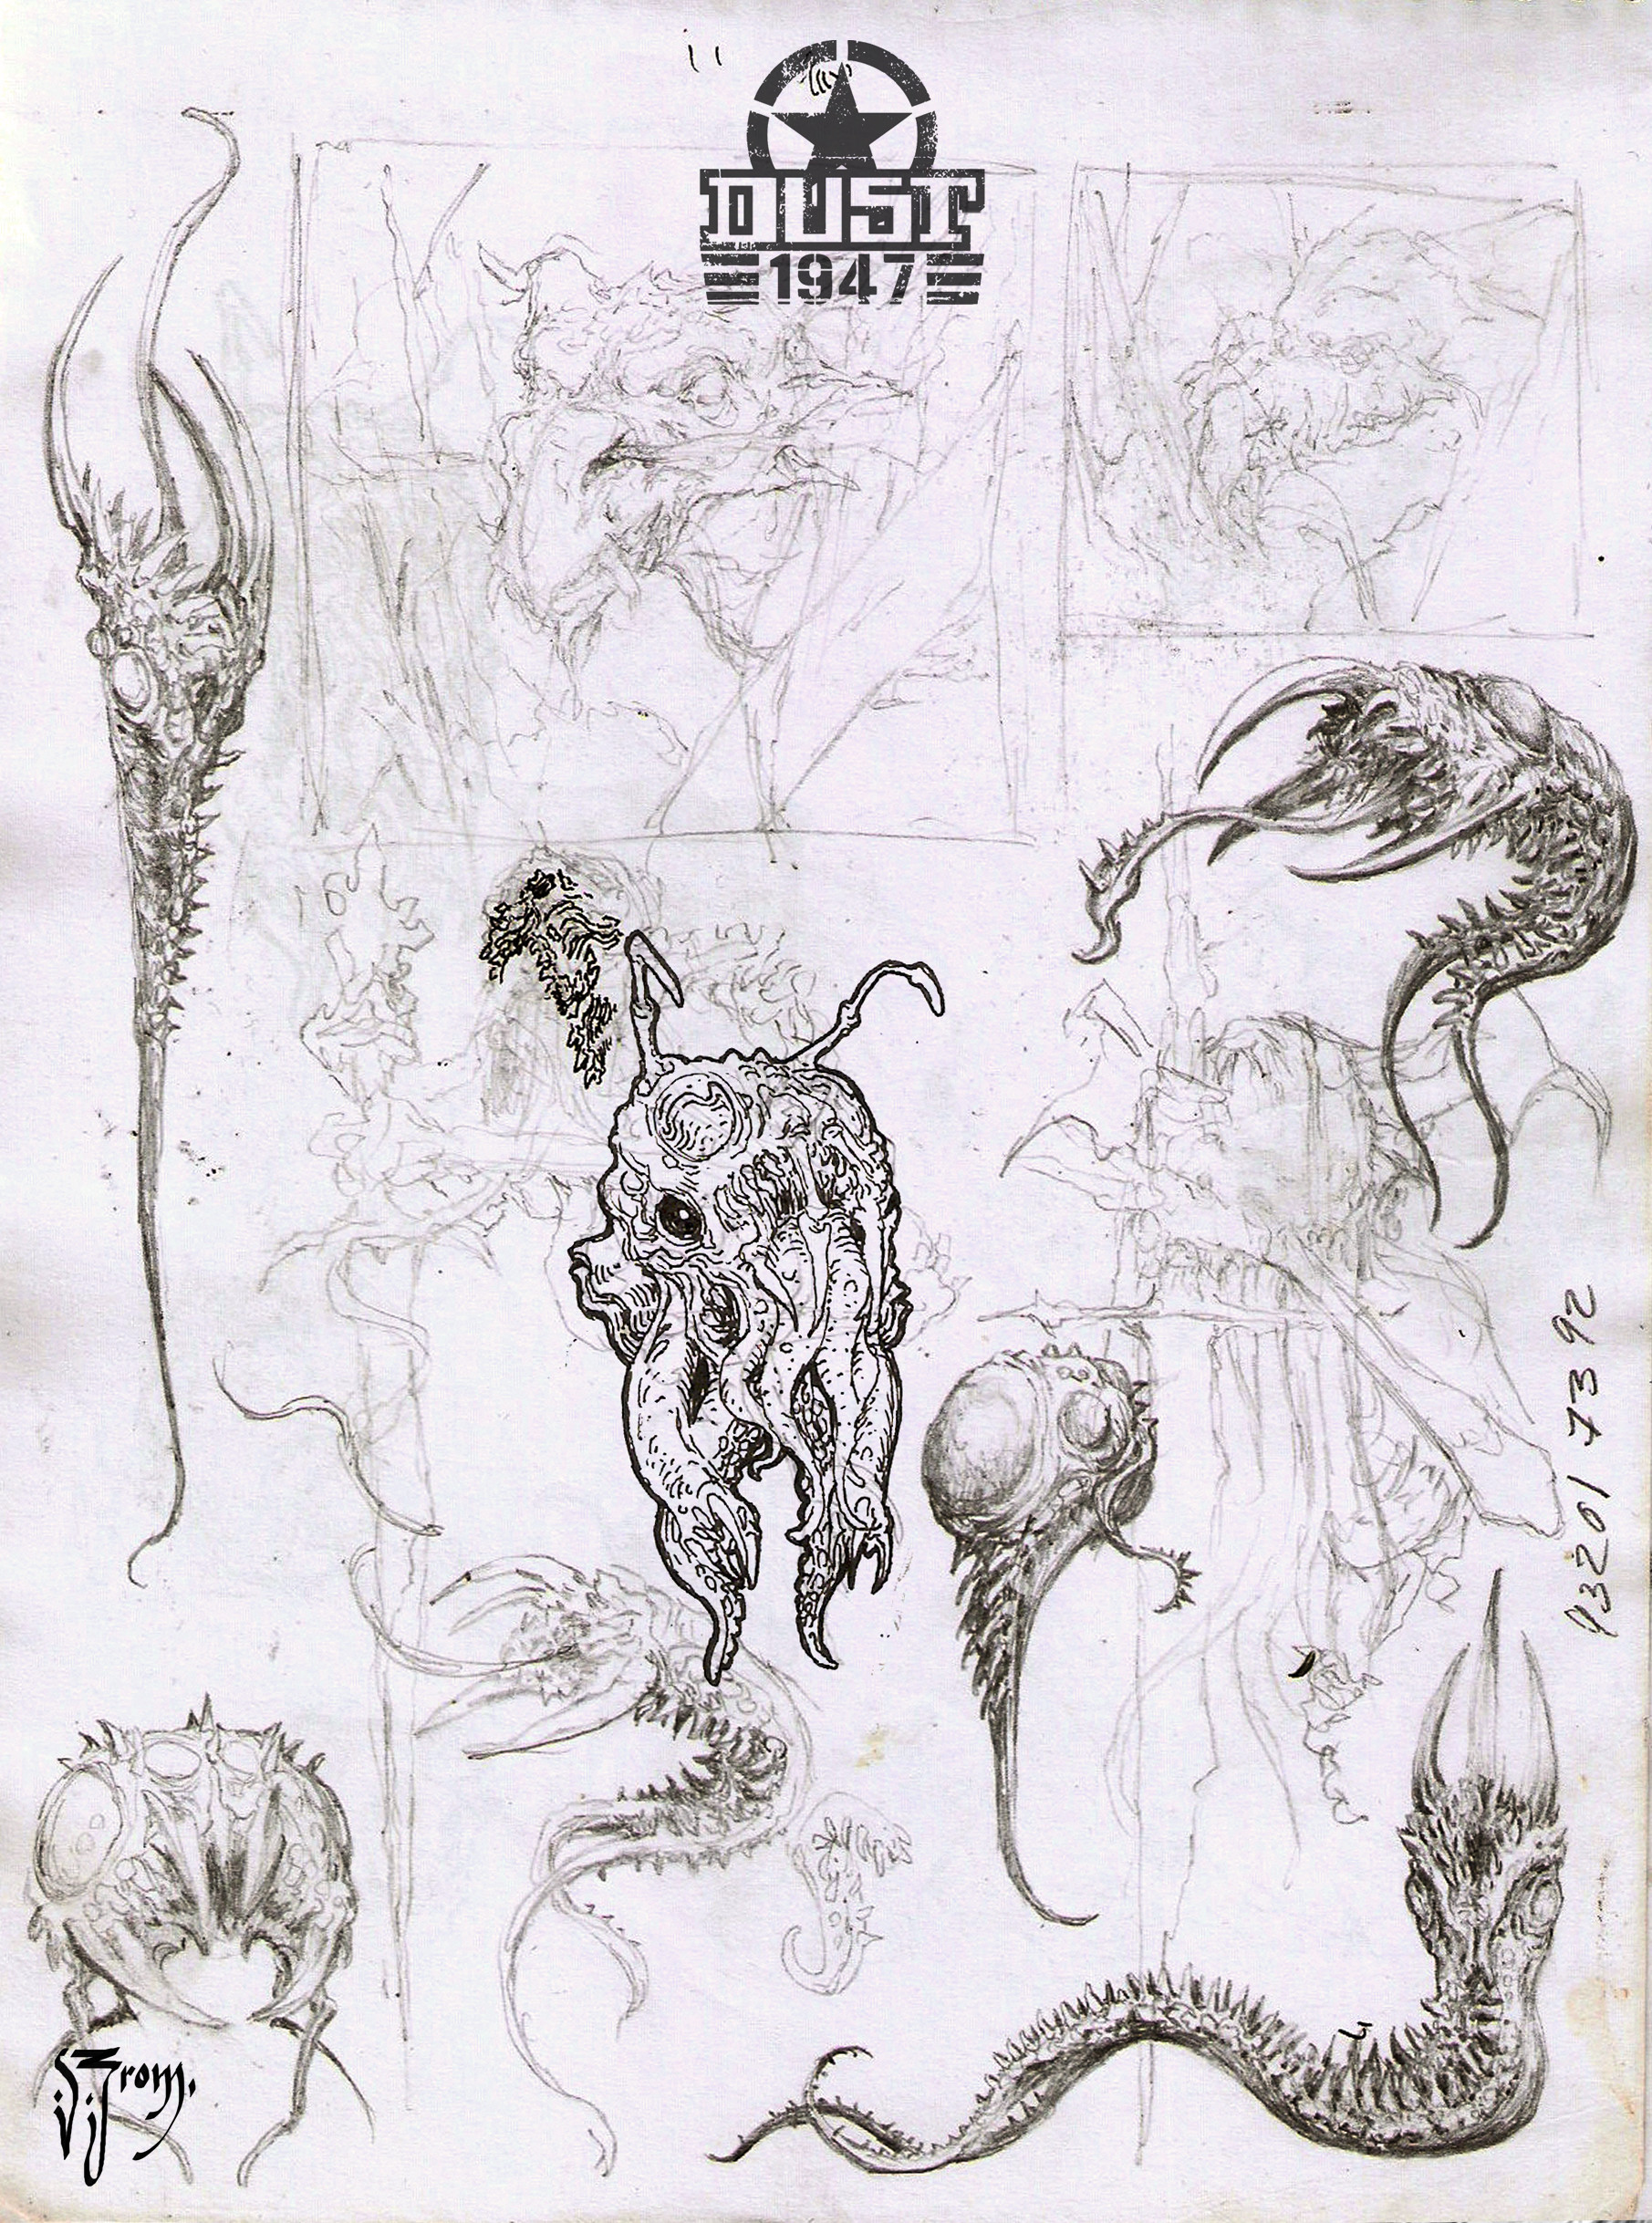 Daniel zrom danielzrom dust1947 cthulhusketches